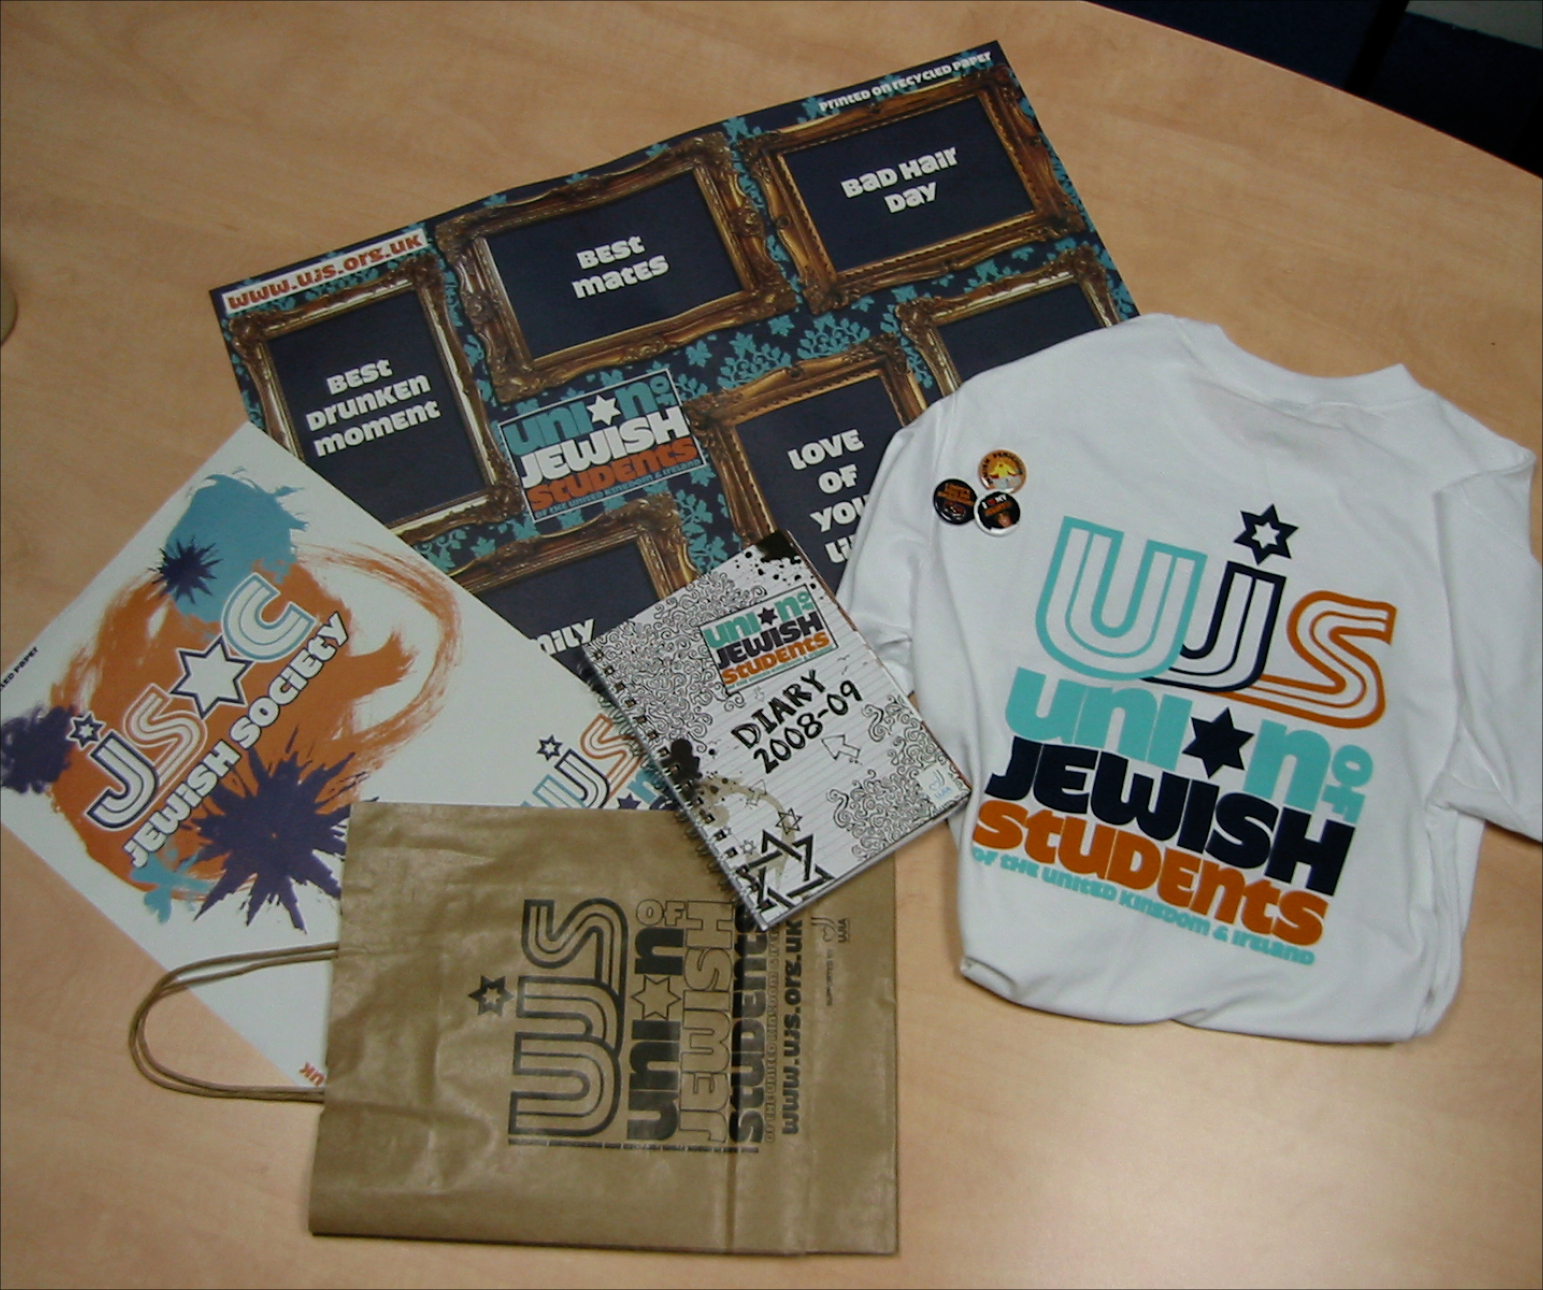 Supporting UJS and Jewish Students